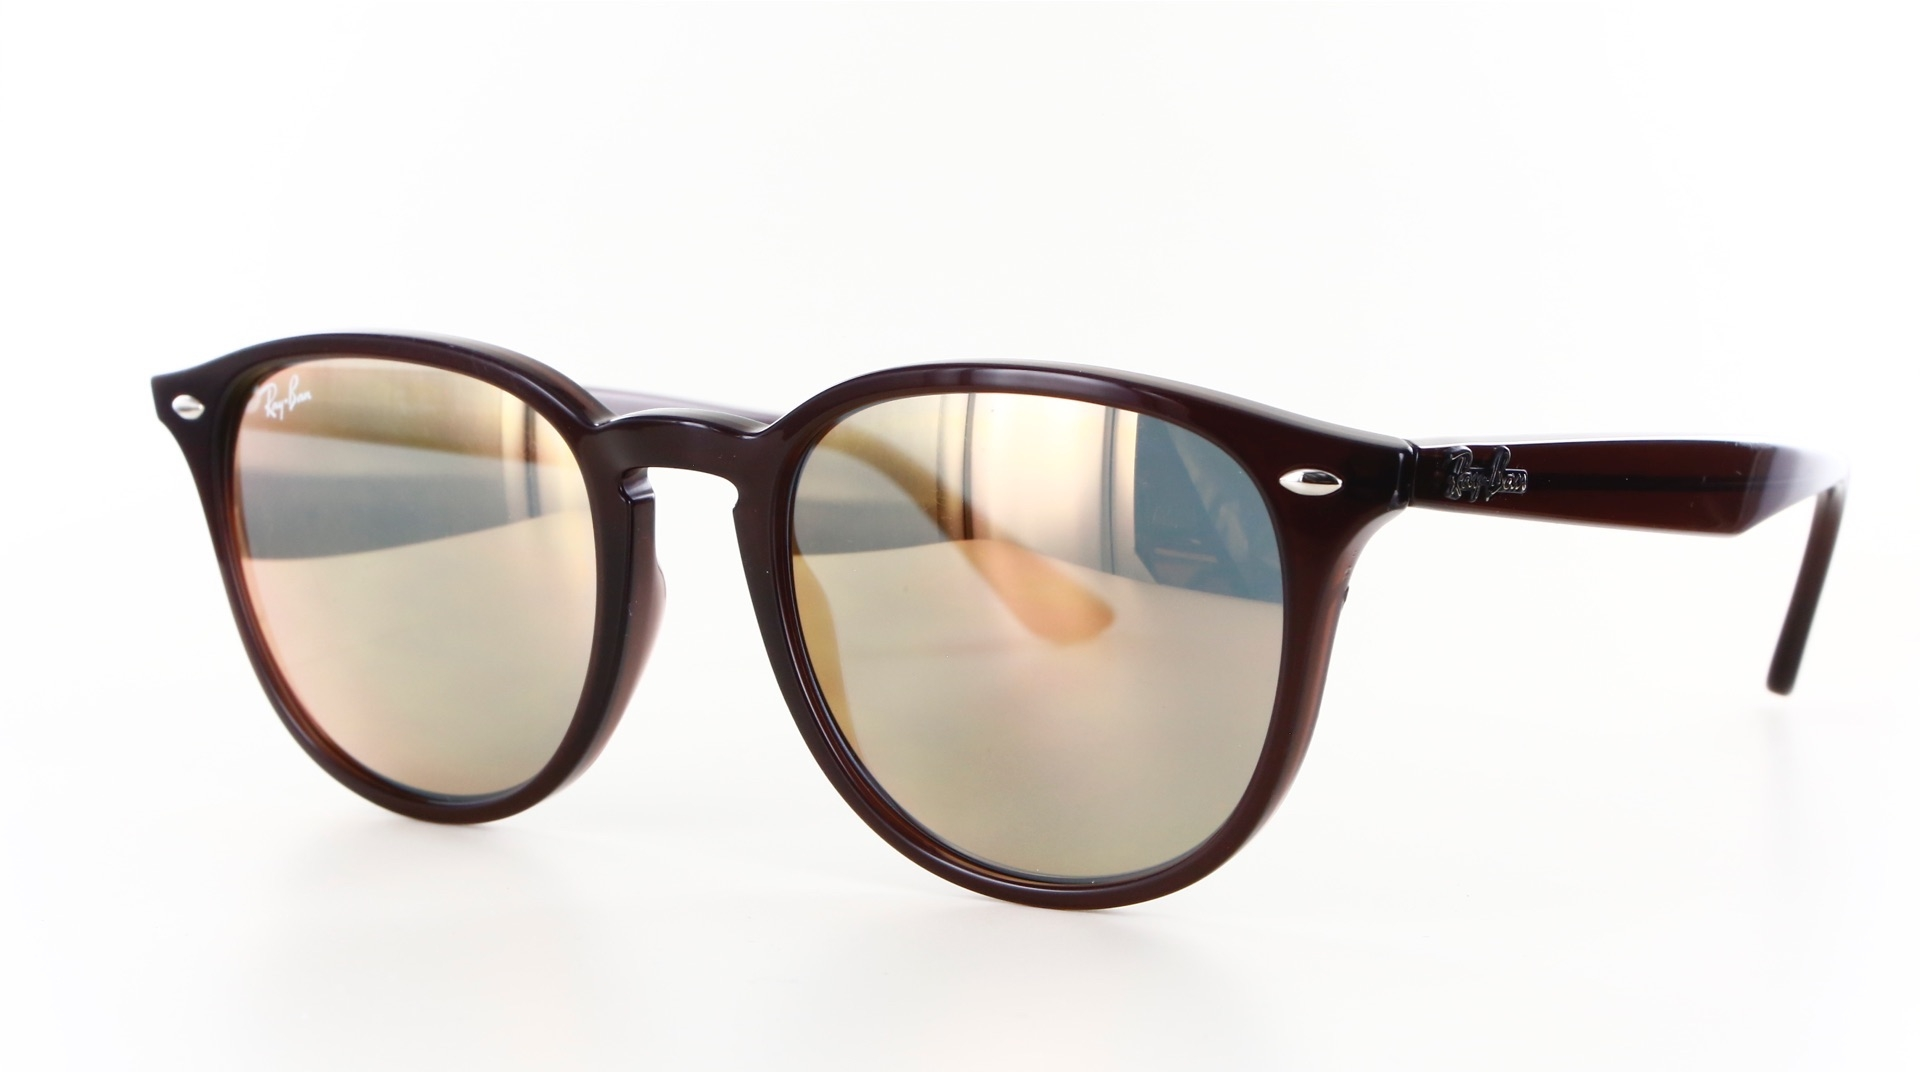 Ray-Ban - ref: 76882